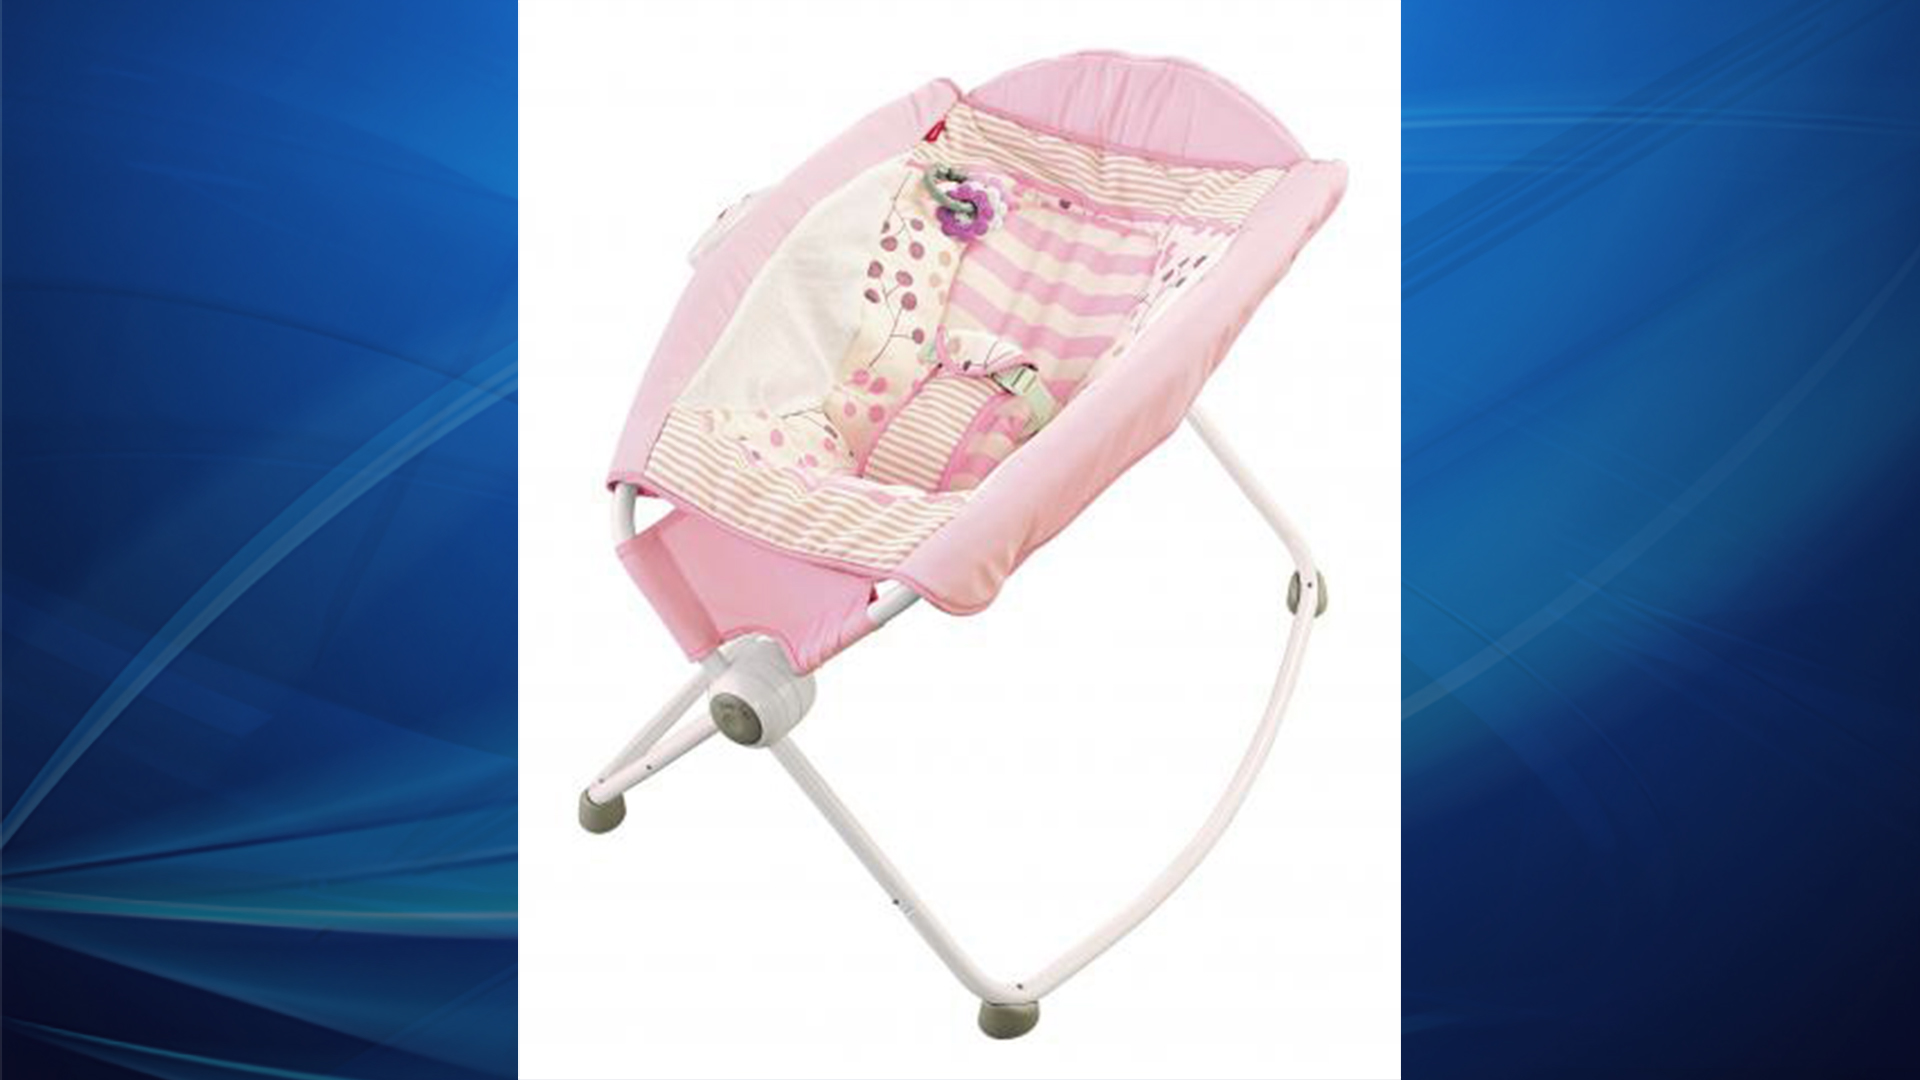 Federal agency proposes ban on inclining baby sleepers